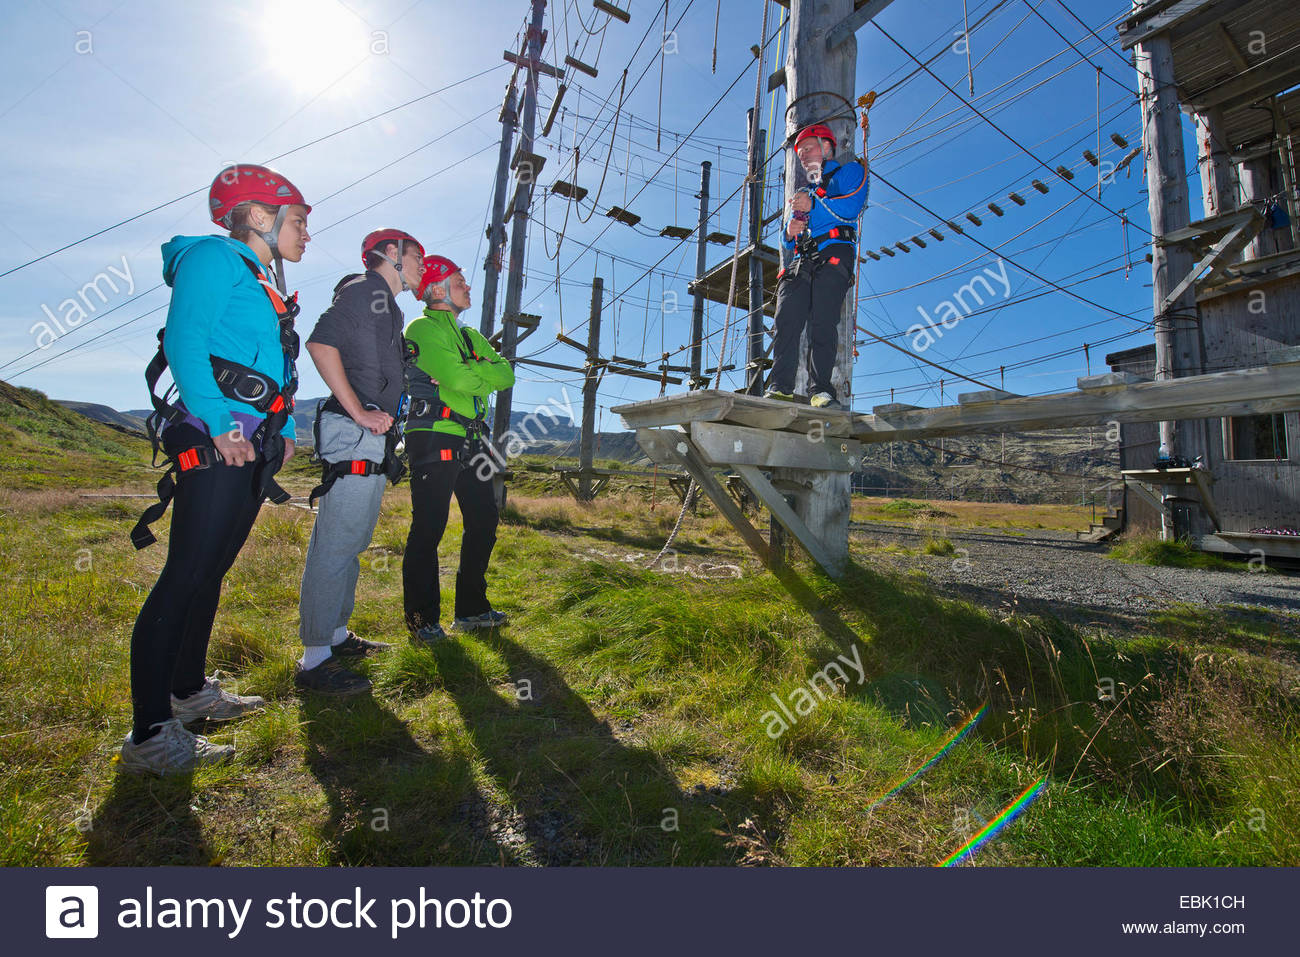 Four people wearing climbing helmets on high rope course Stock Photo